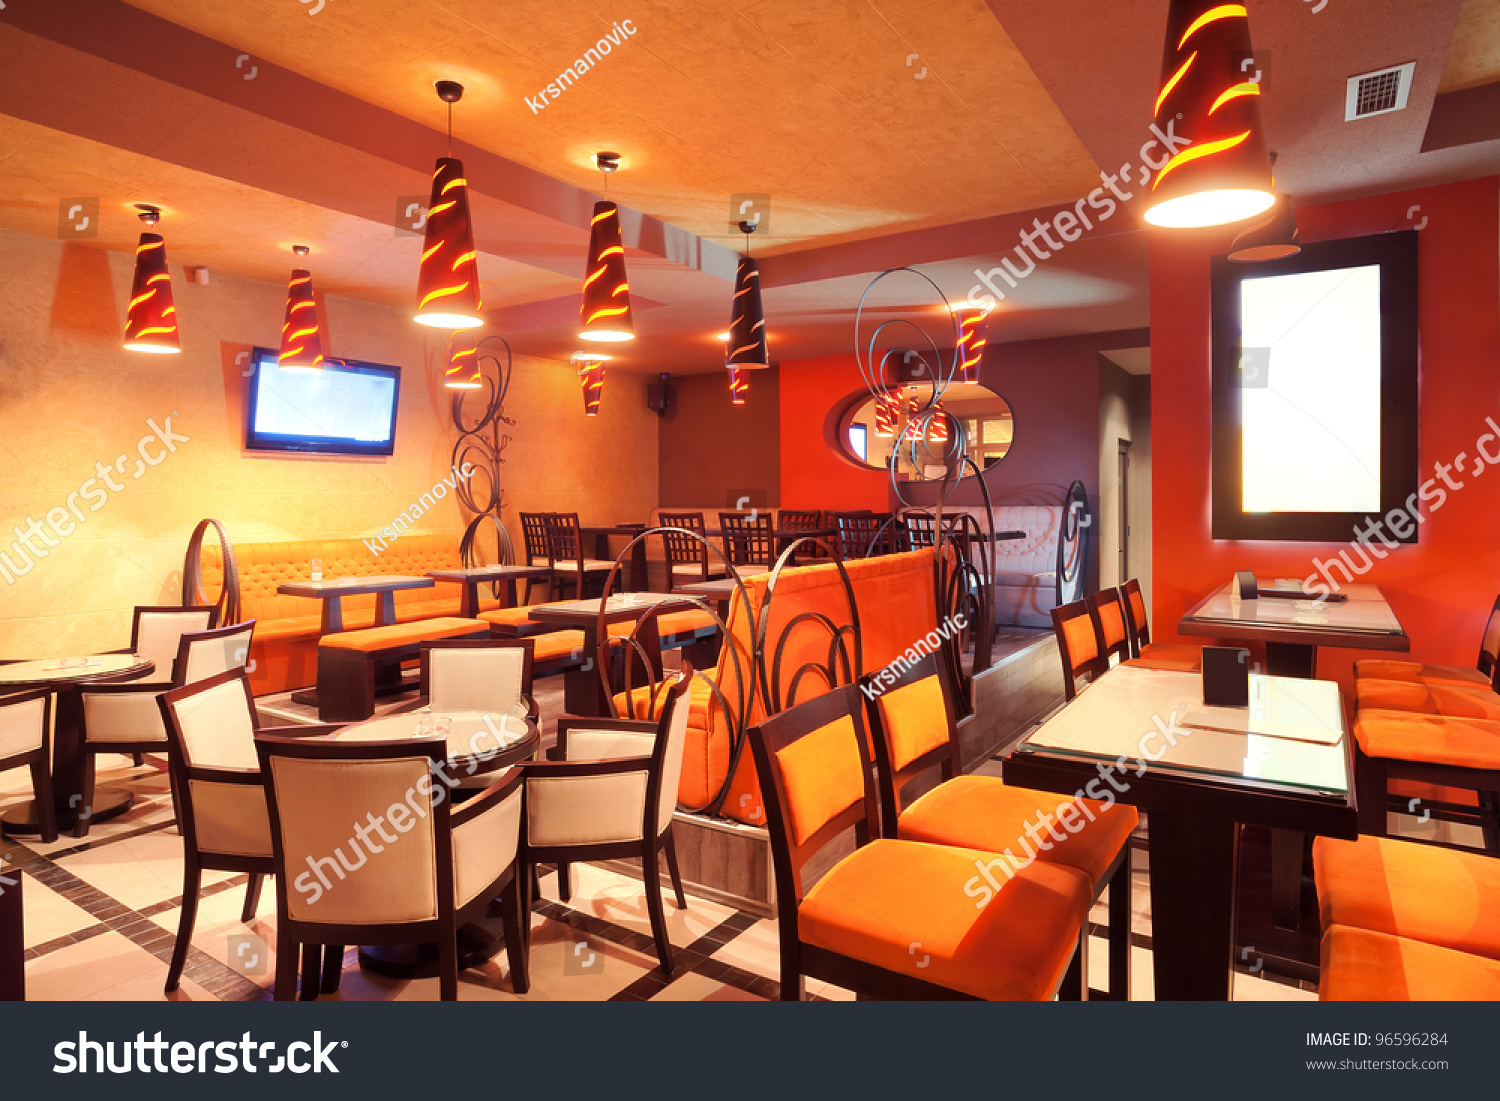 Amusing orange restaurant decor design inspiration of